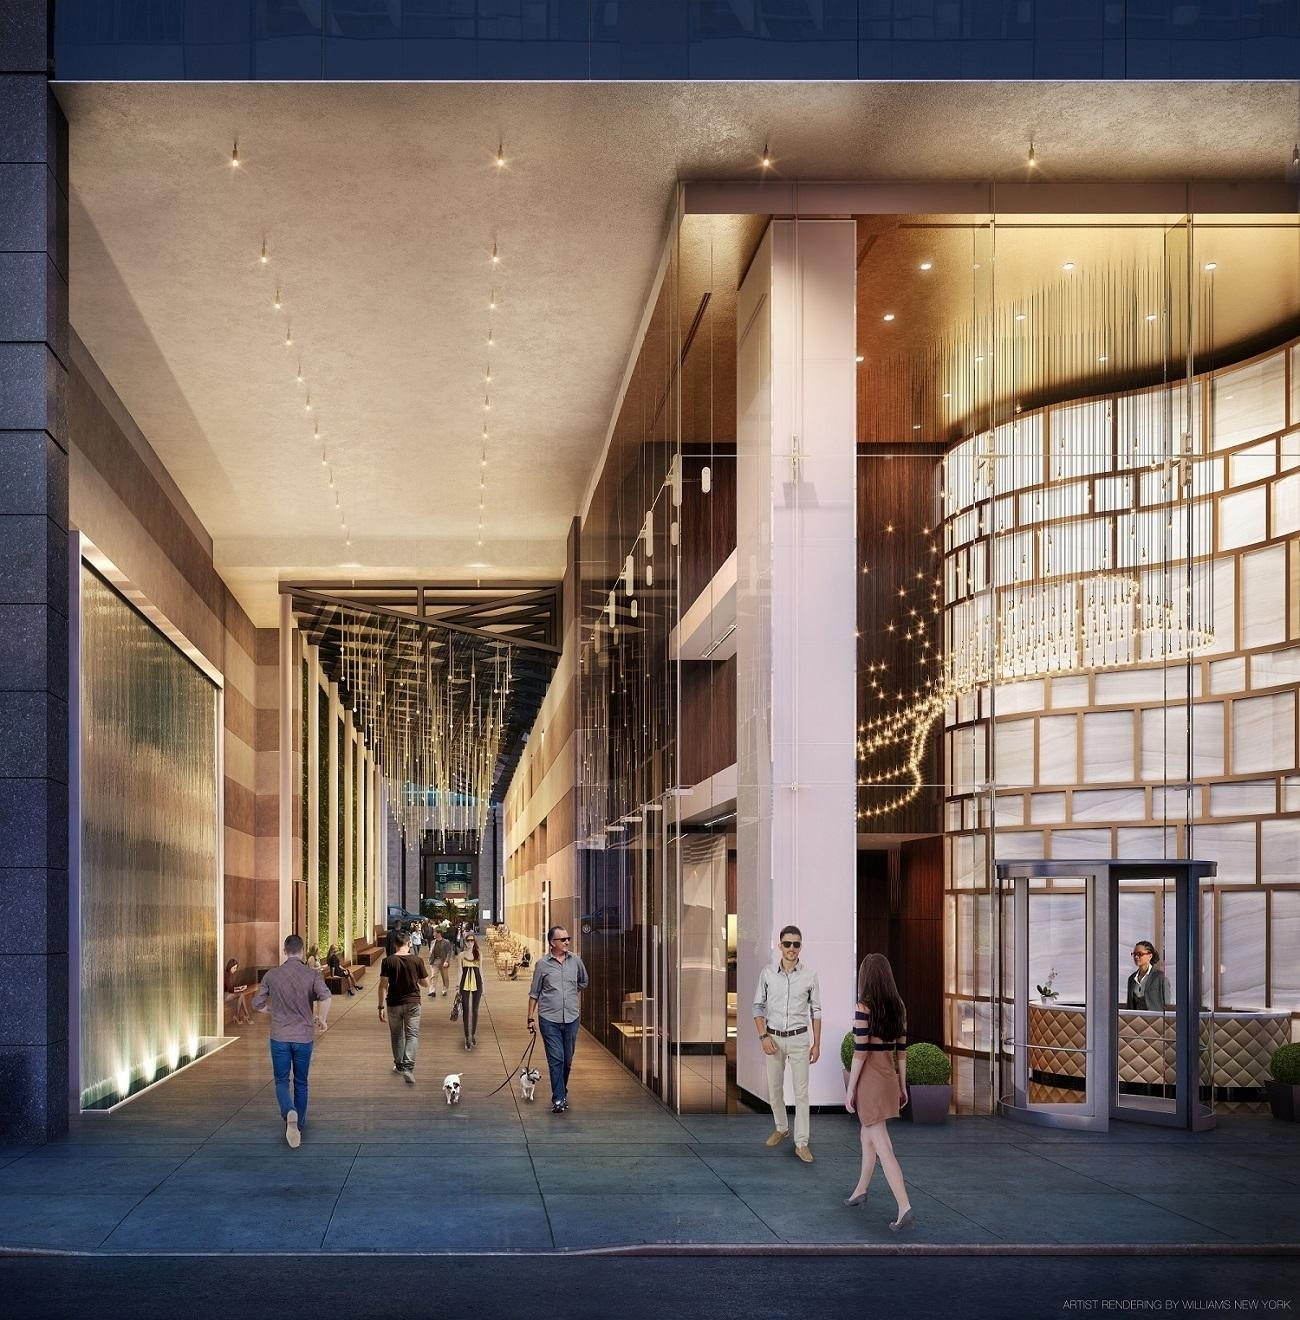 Property at 135 West 52nd St, 36A Theater District - Times Square, New York